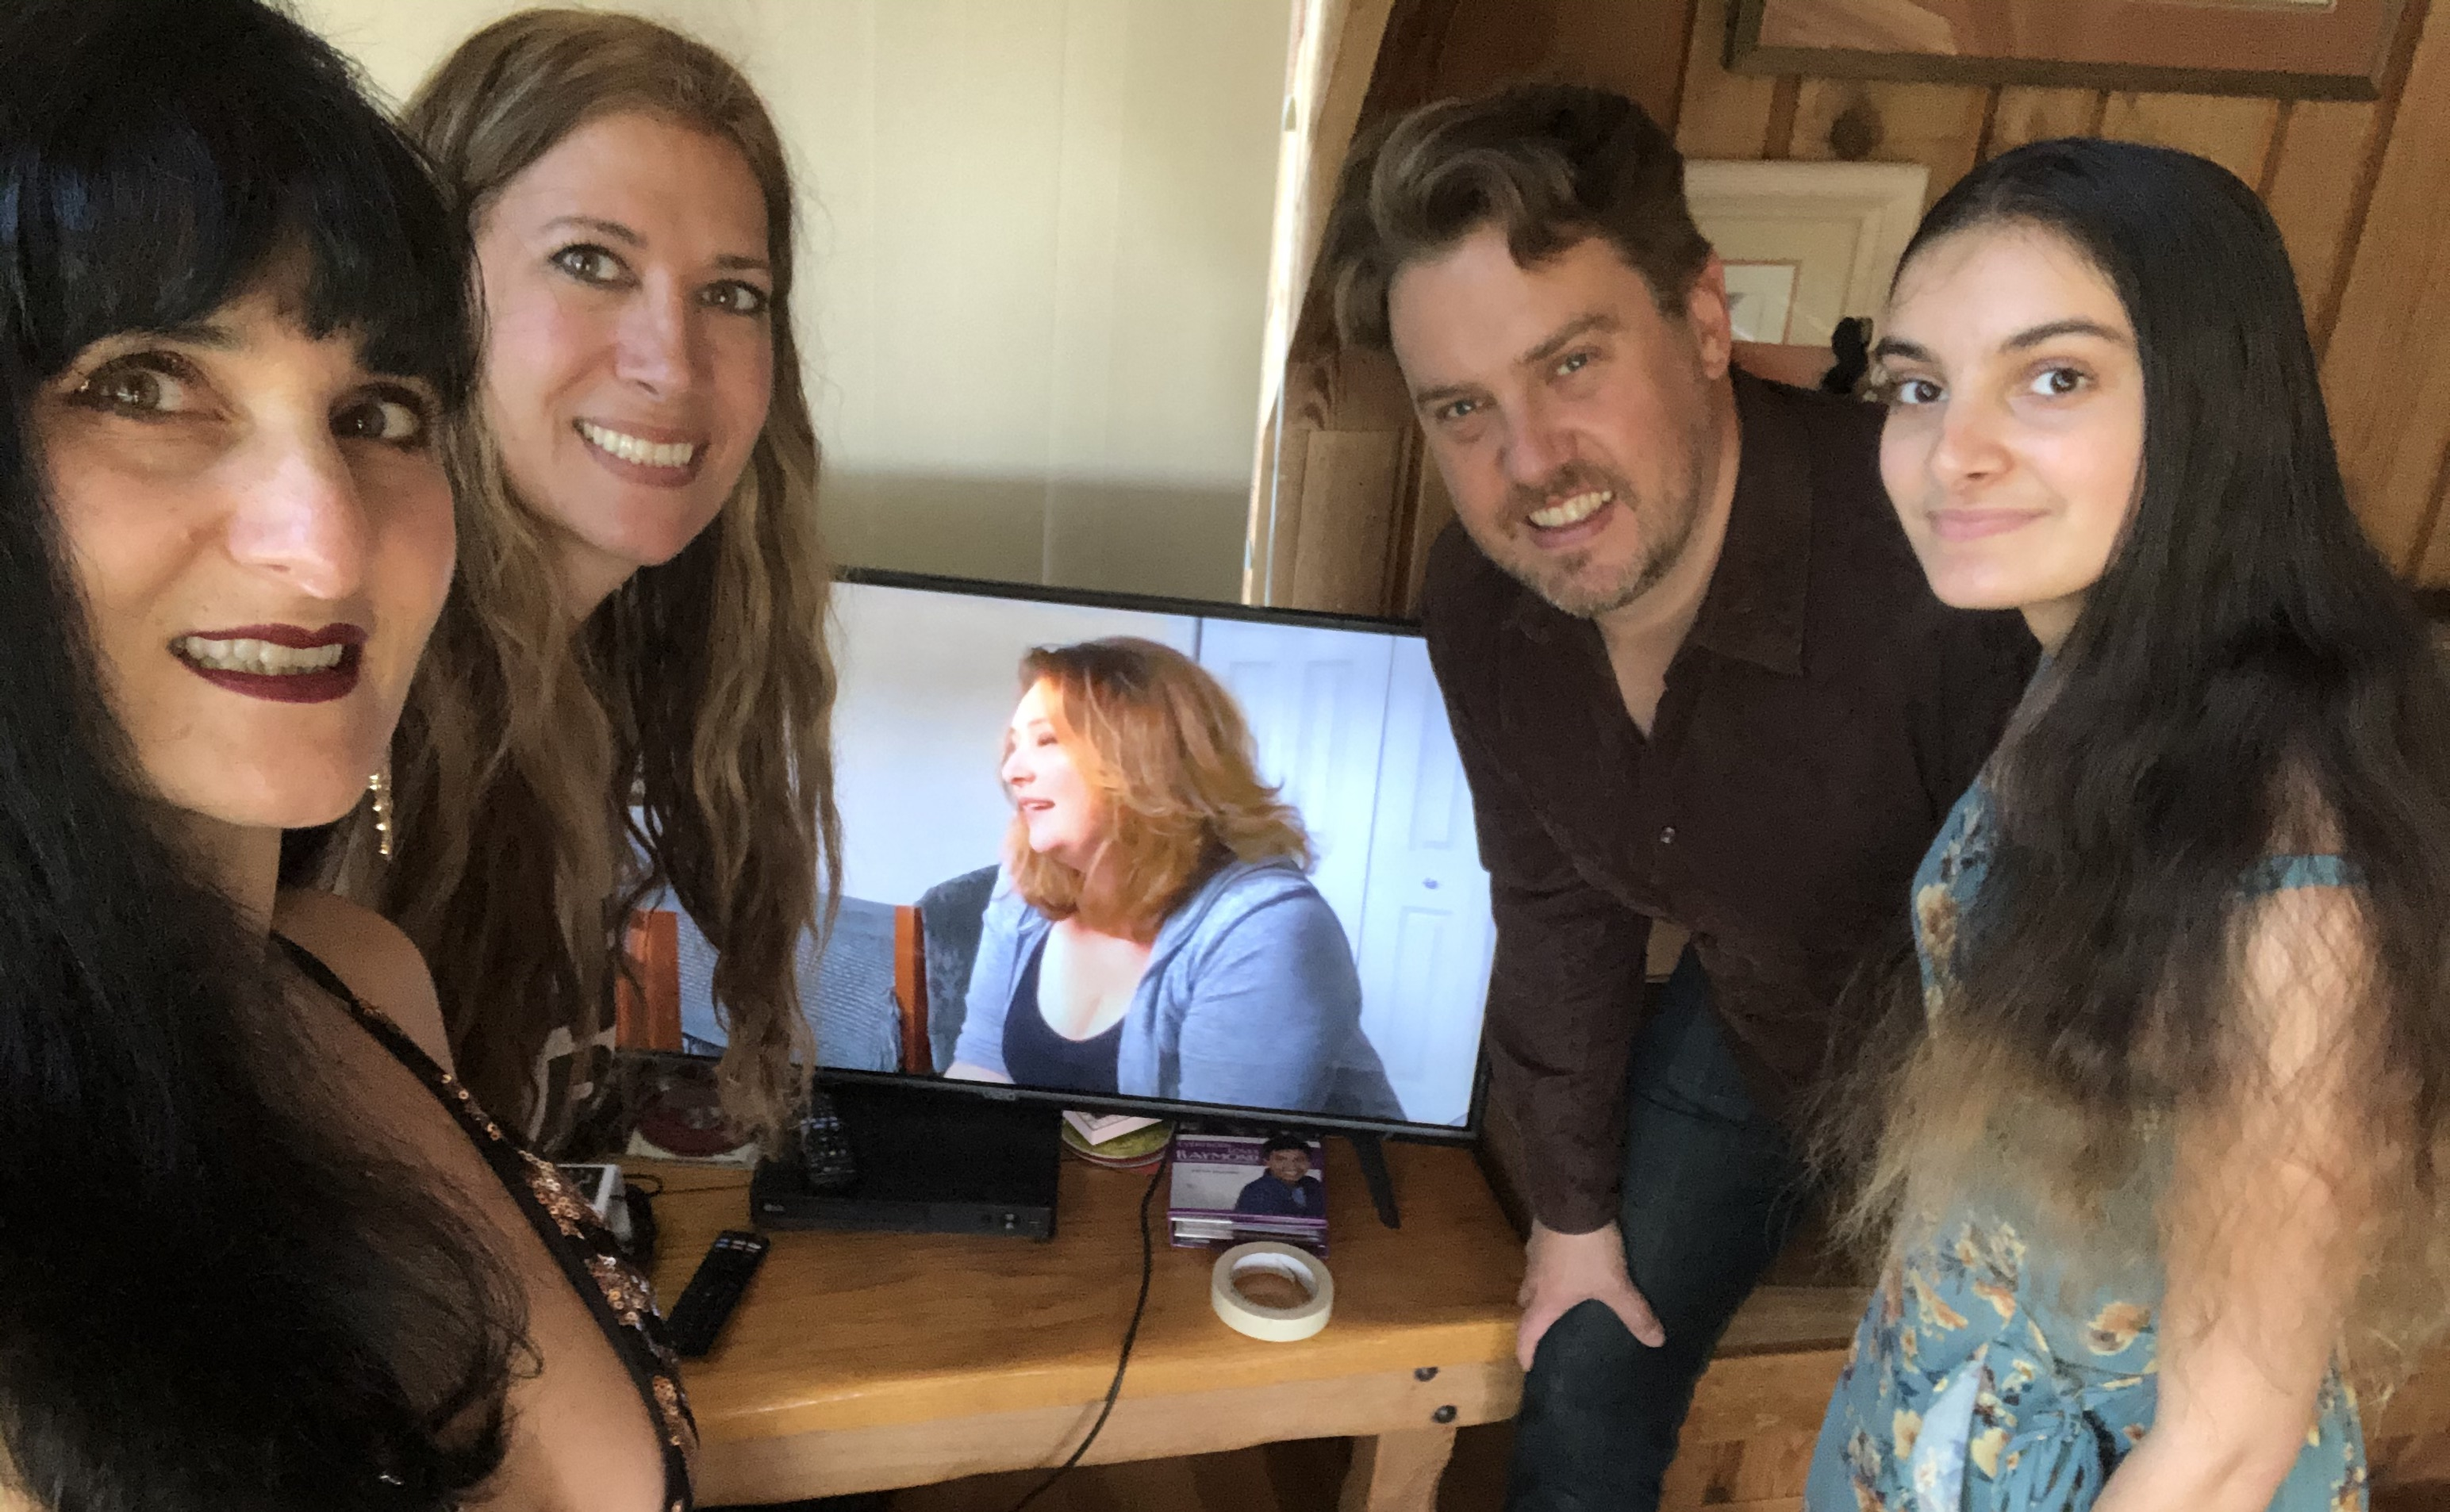 Karen Naifeh Harmon celebrated her Berklee Commencement from her mom's ranch near Tulsa, Oklahoma. From left to right: Harmon, her sister Jamie, her husband Nathan, and daughter Lexy.